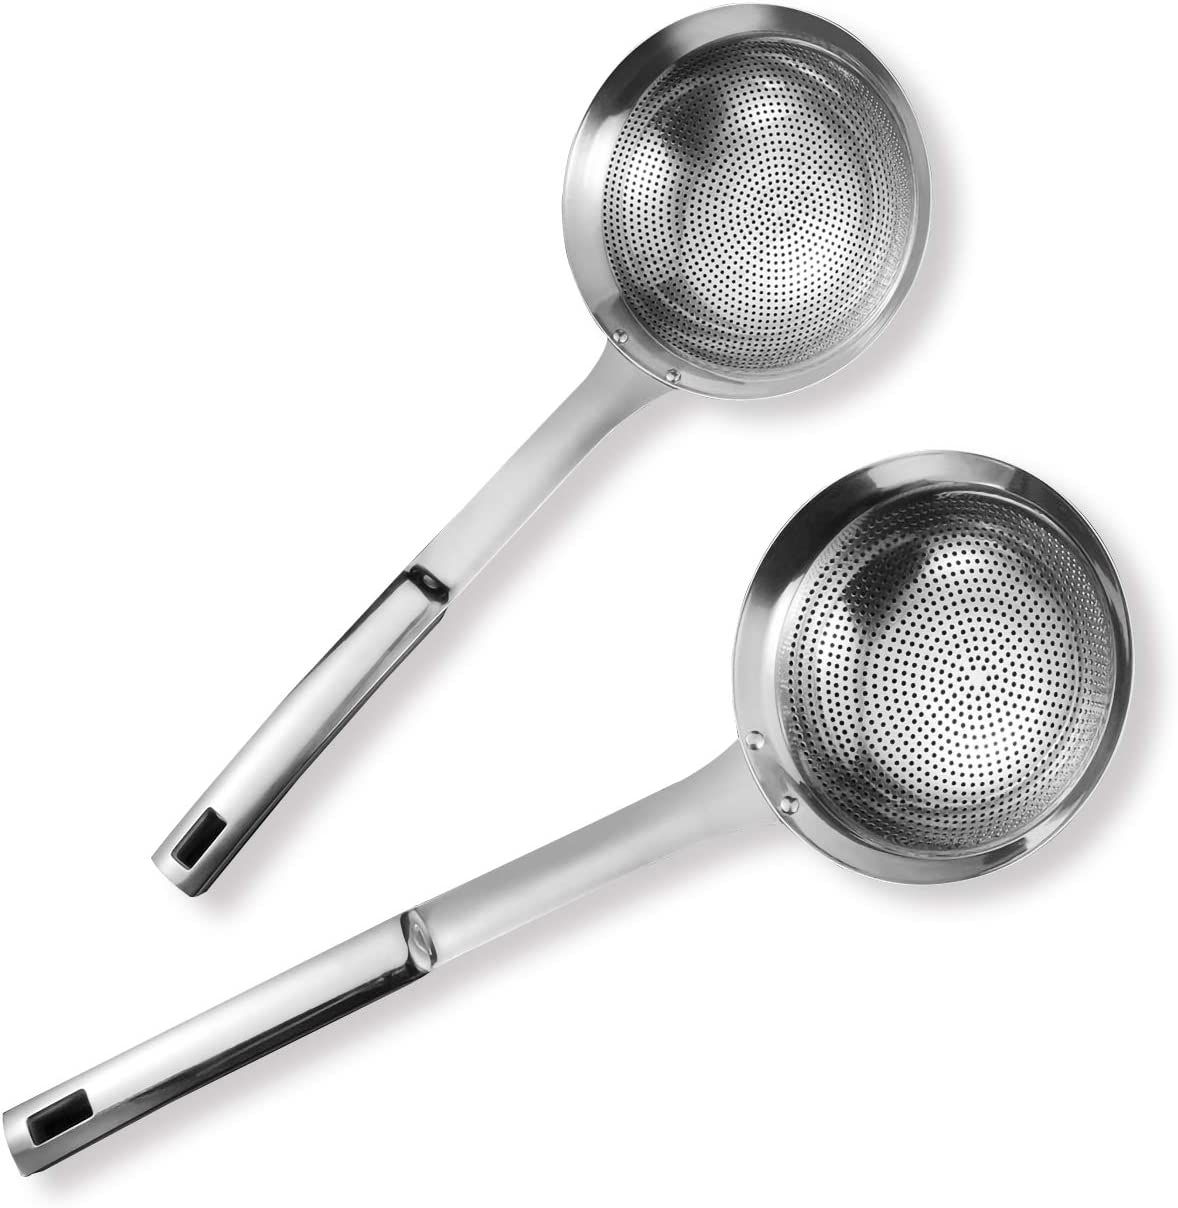 Large Scoop Colander,13 lnches /& 16 lnches Comfortable Grip Design Strainer Ladle,for Cooking and Frying Premium 304 Stainless Steel Skimmer Slotted Spoon Set